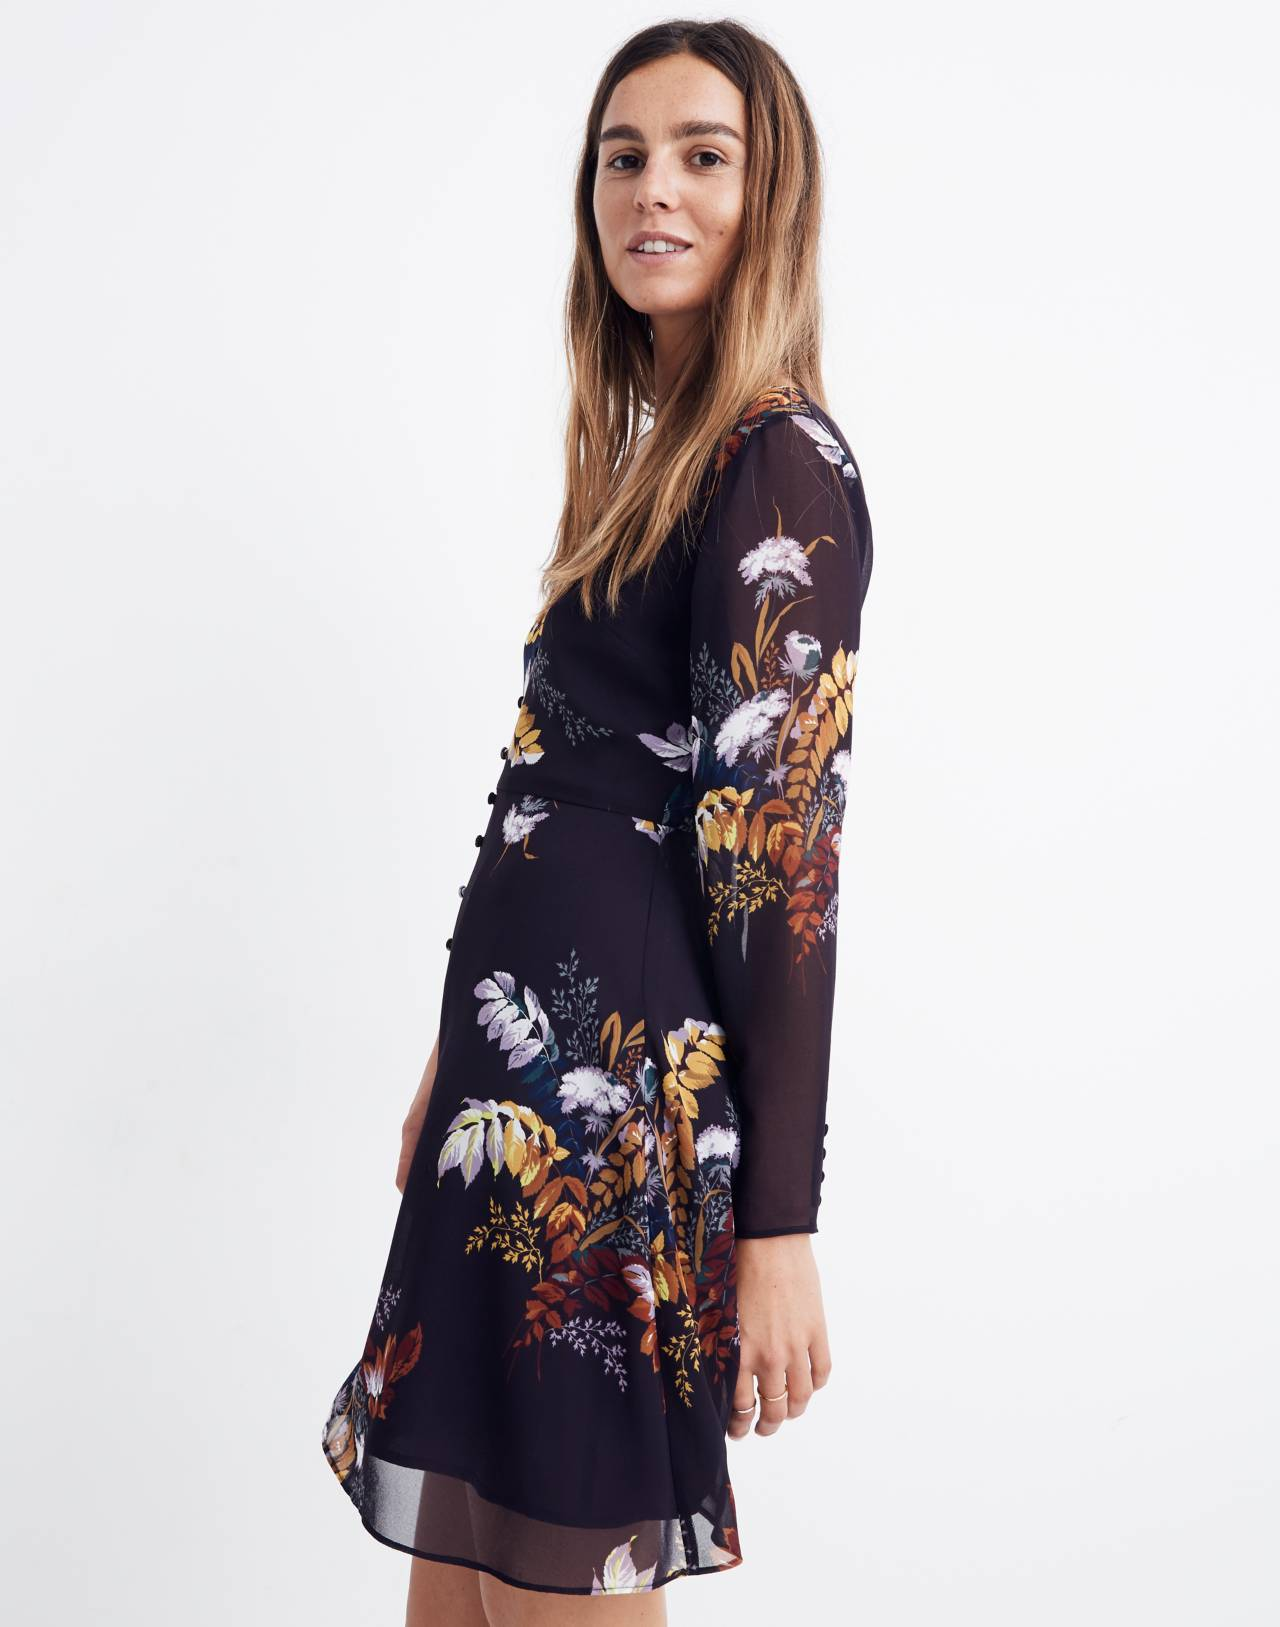 Lilyblossom Button-Front Dress in Blooming Oasis in harvest dark eggplant image 2